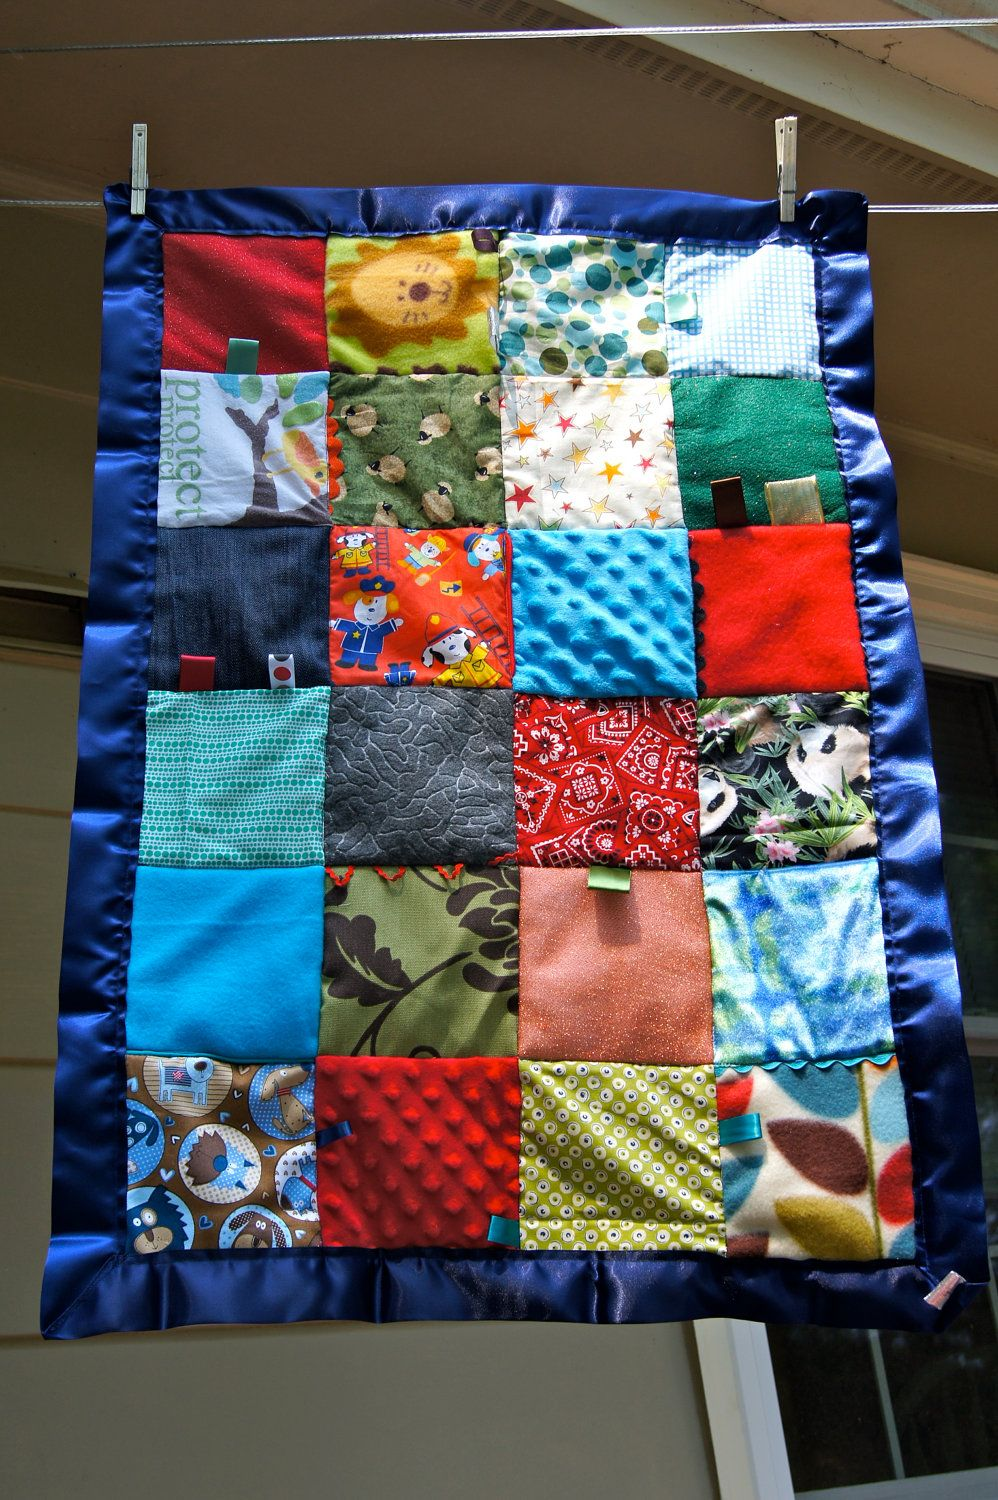 Child S Sensory Quilt With Navy Blue Binding By